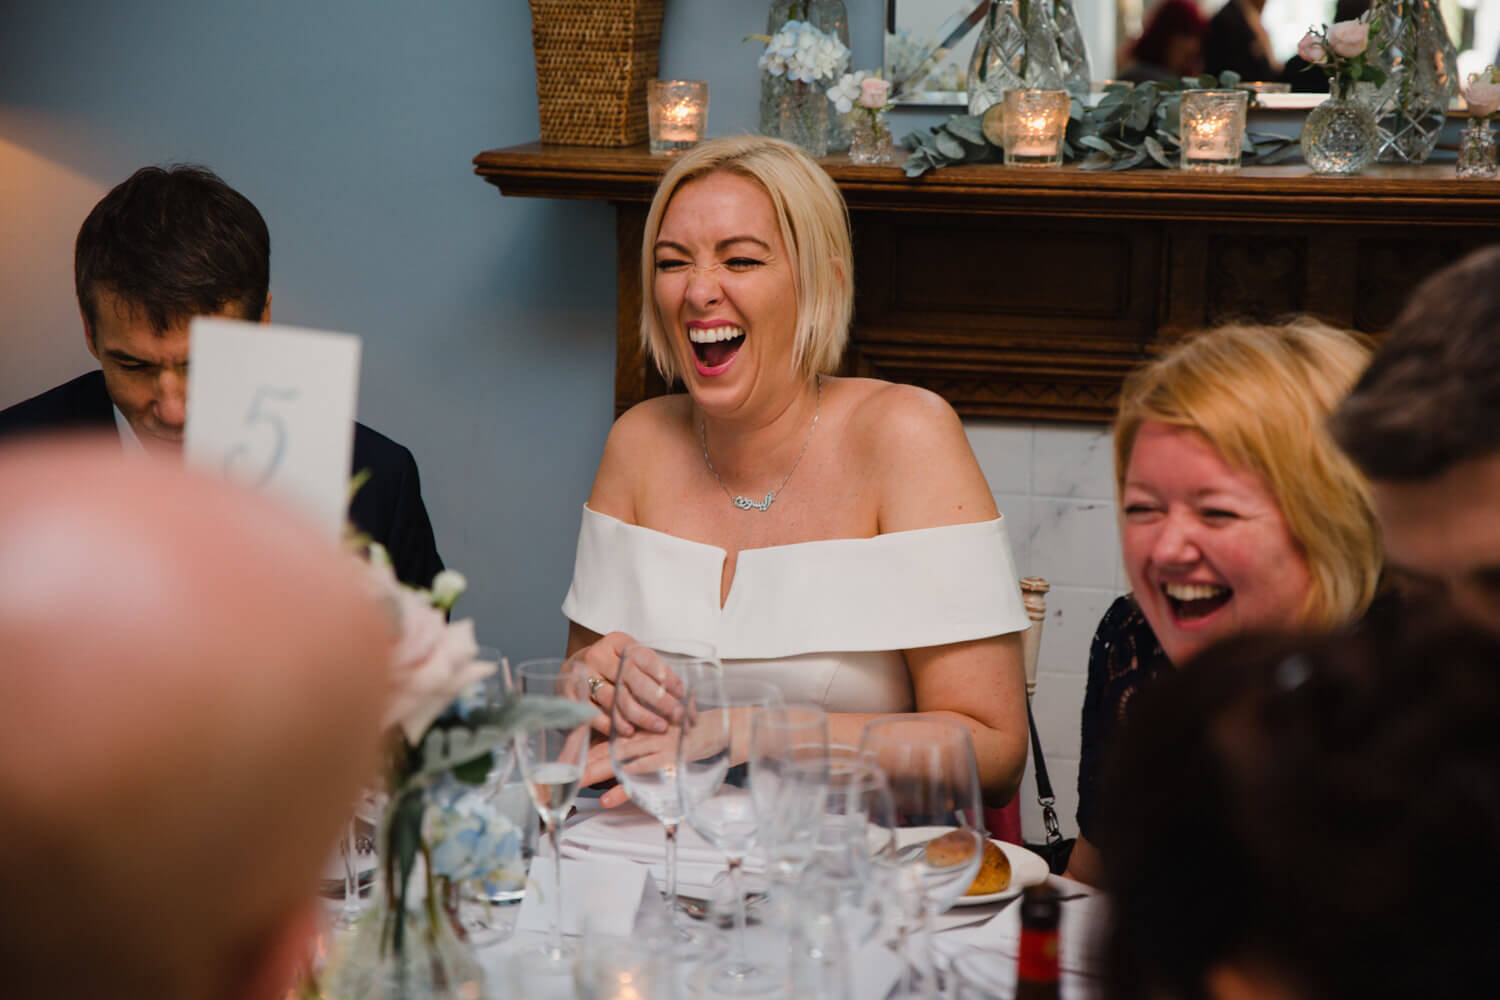 wedding guest laughing and joking